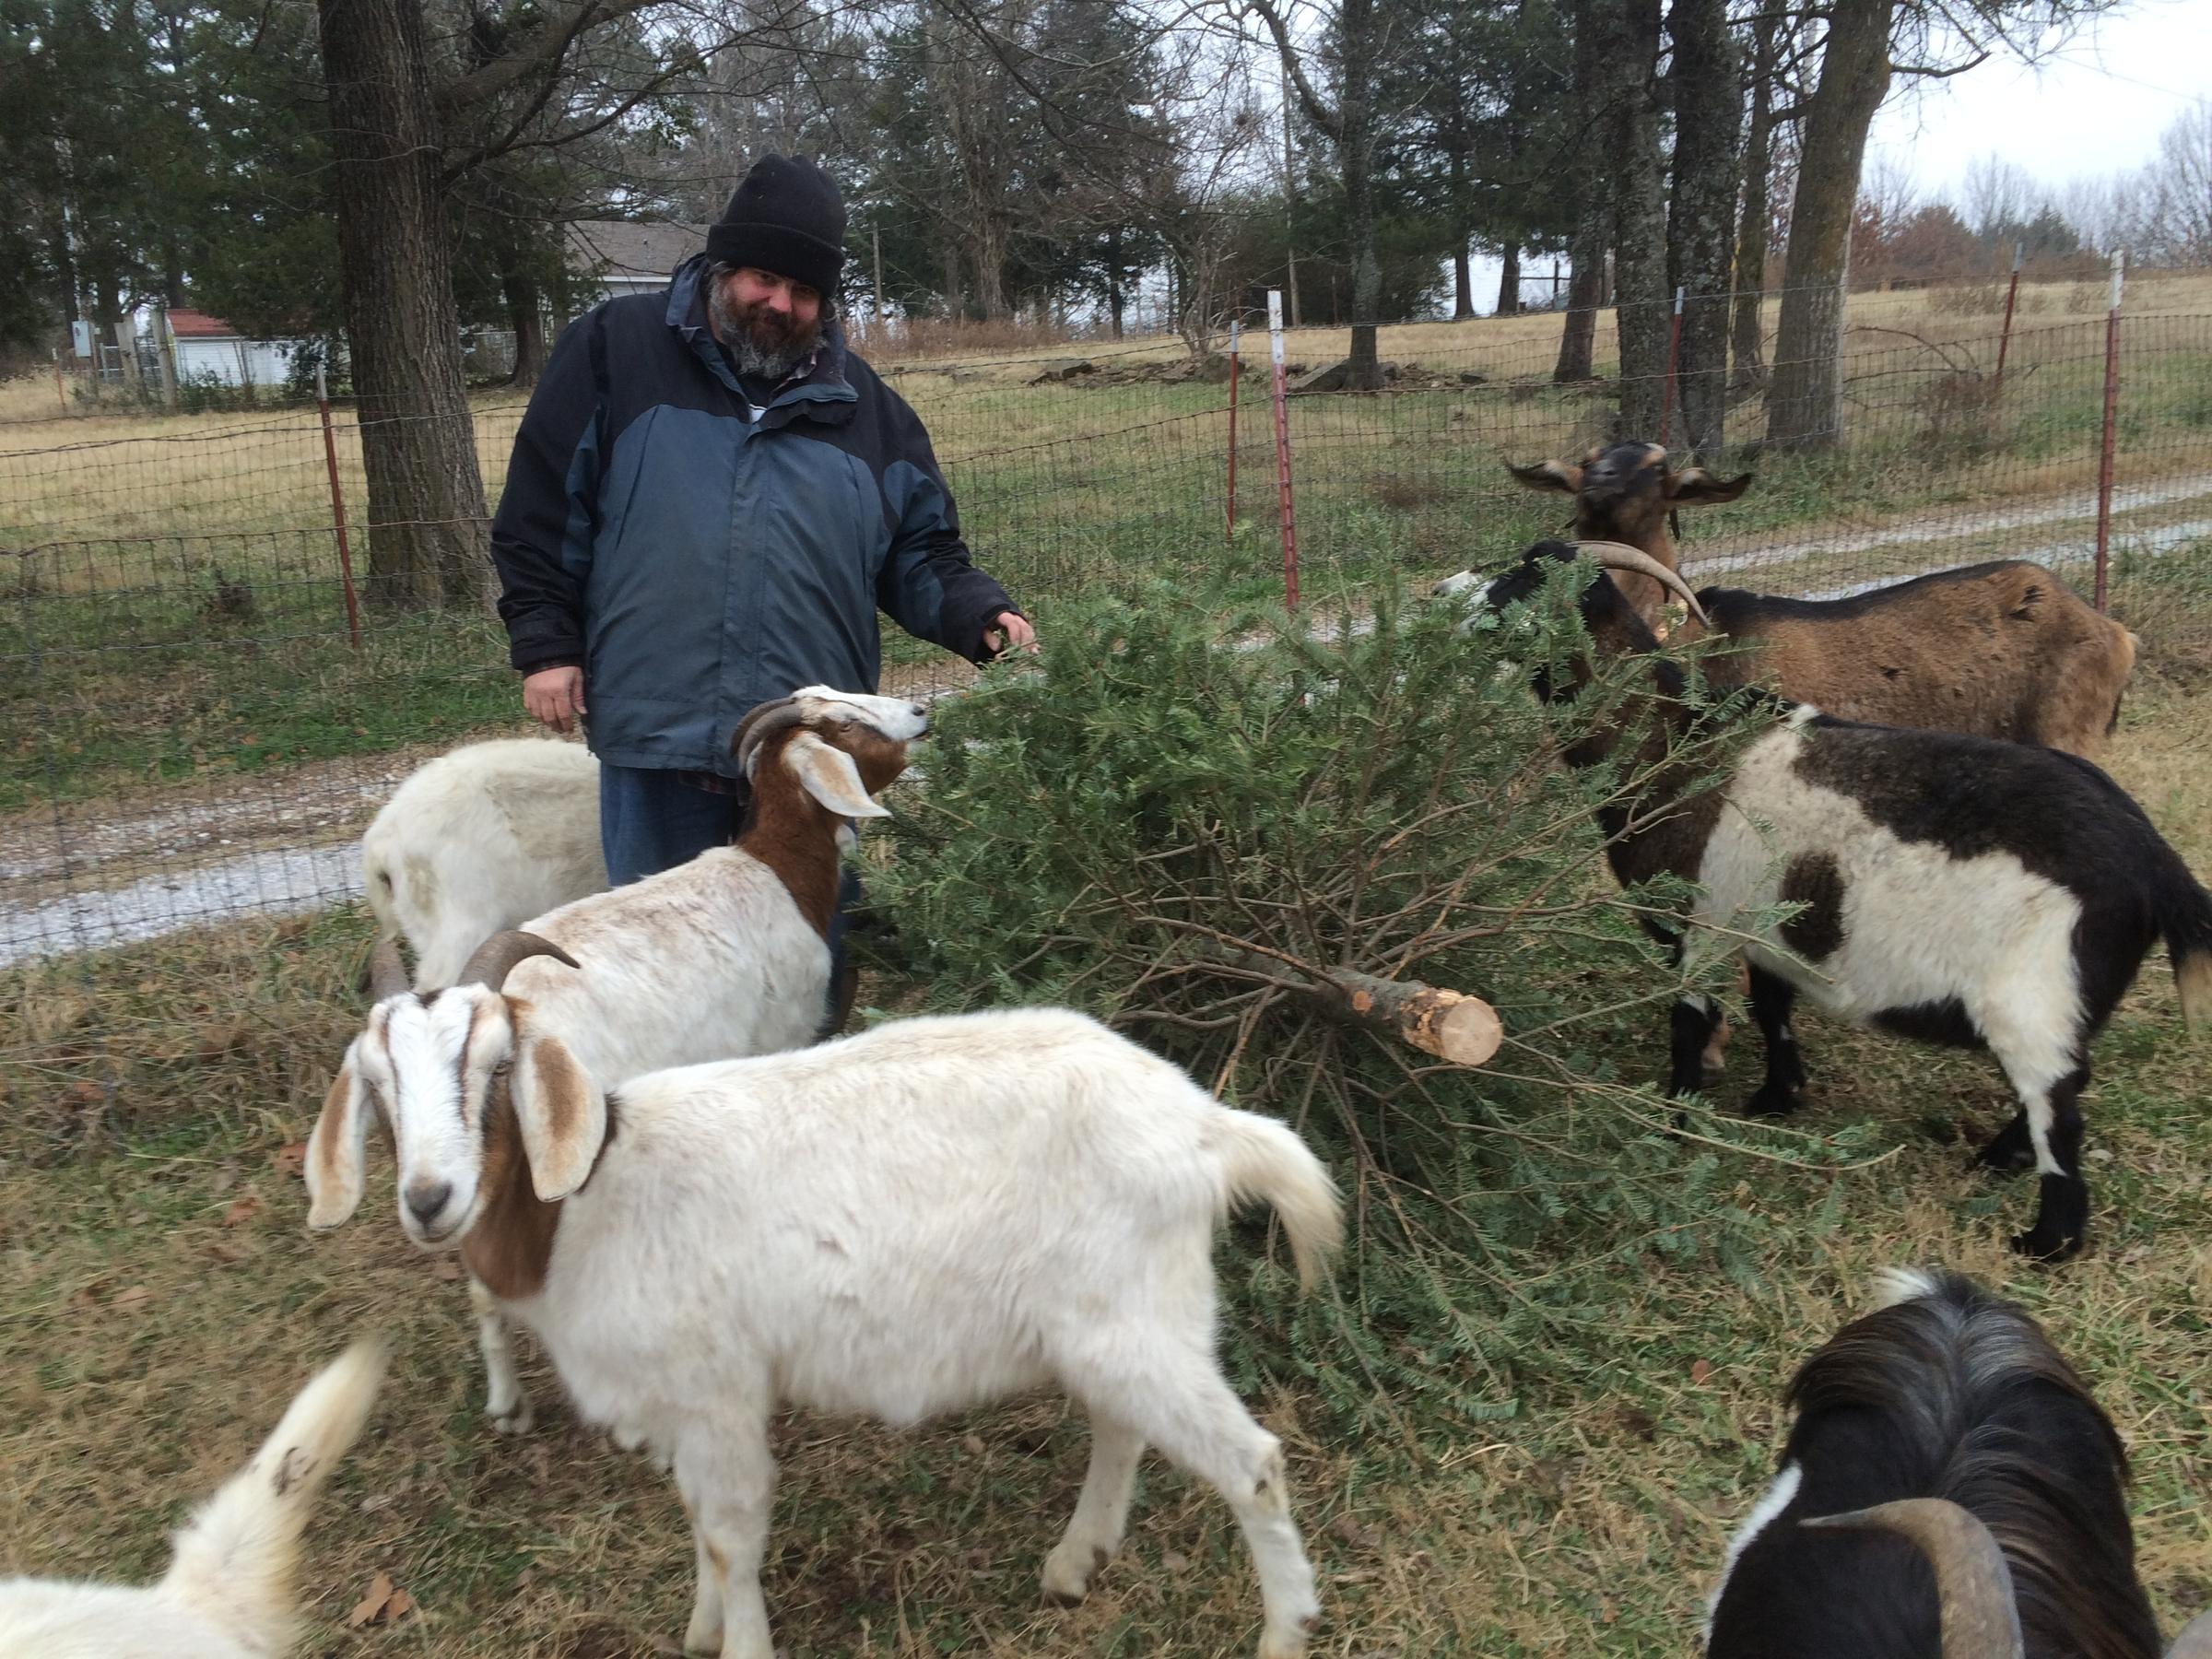 Goats: Alternative for Disposing of Christmas Trees | KUAF